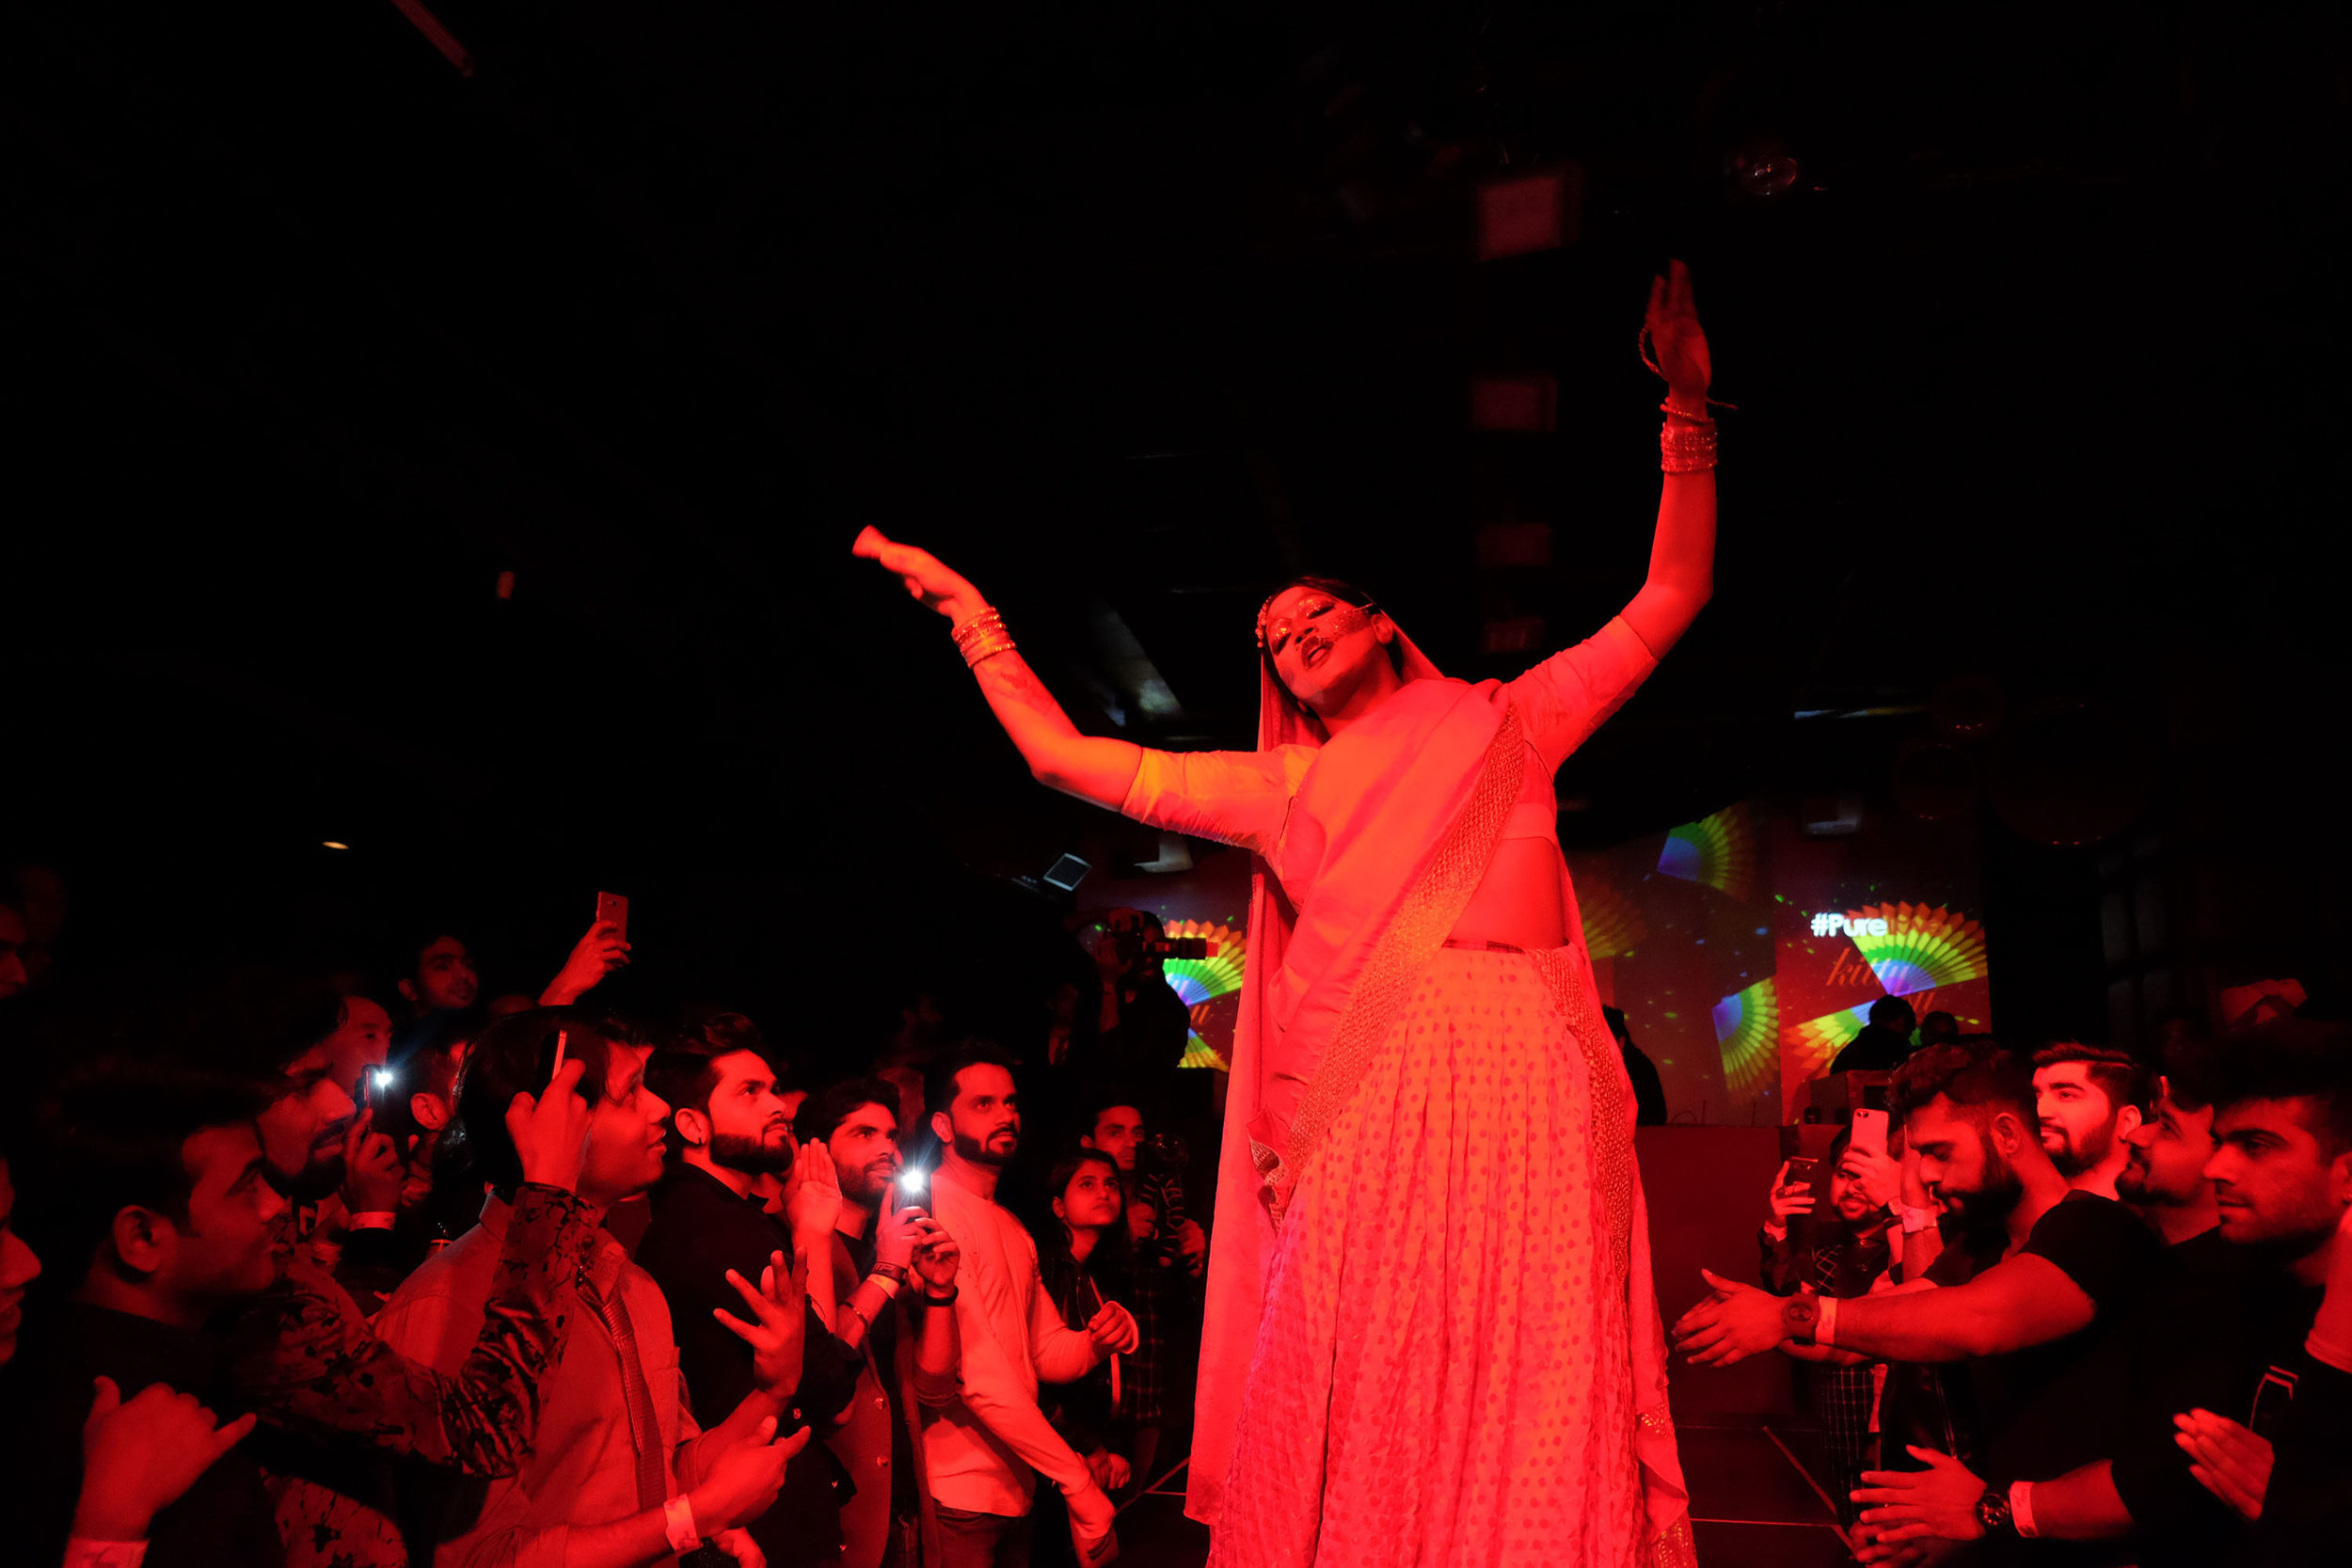 "SAHIBA CHAWDHARY  www.sahibachawdhary.com  |  @sahiba_chawdhary   Alex Mathew, a Bangalore-based drag artist in his persona as ""Mayamma, Mother of Illusions,"" performs the Bollywood song ""Ghoomar"" portraying her majestic ""Maya-Sa"" form. As drag gains popularity in India, my long-term photo project ""Drag Queens of India"" documents queer men and artists taking up the art of drag to express their alter egos, liberate themselves and break gender stereotypes."